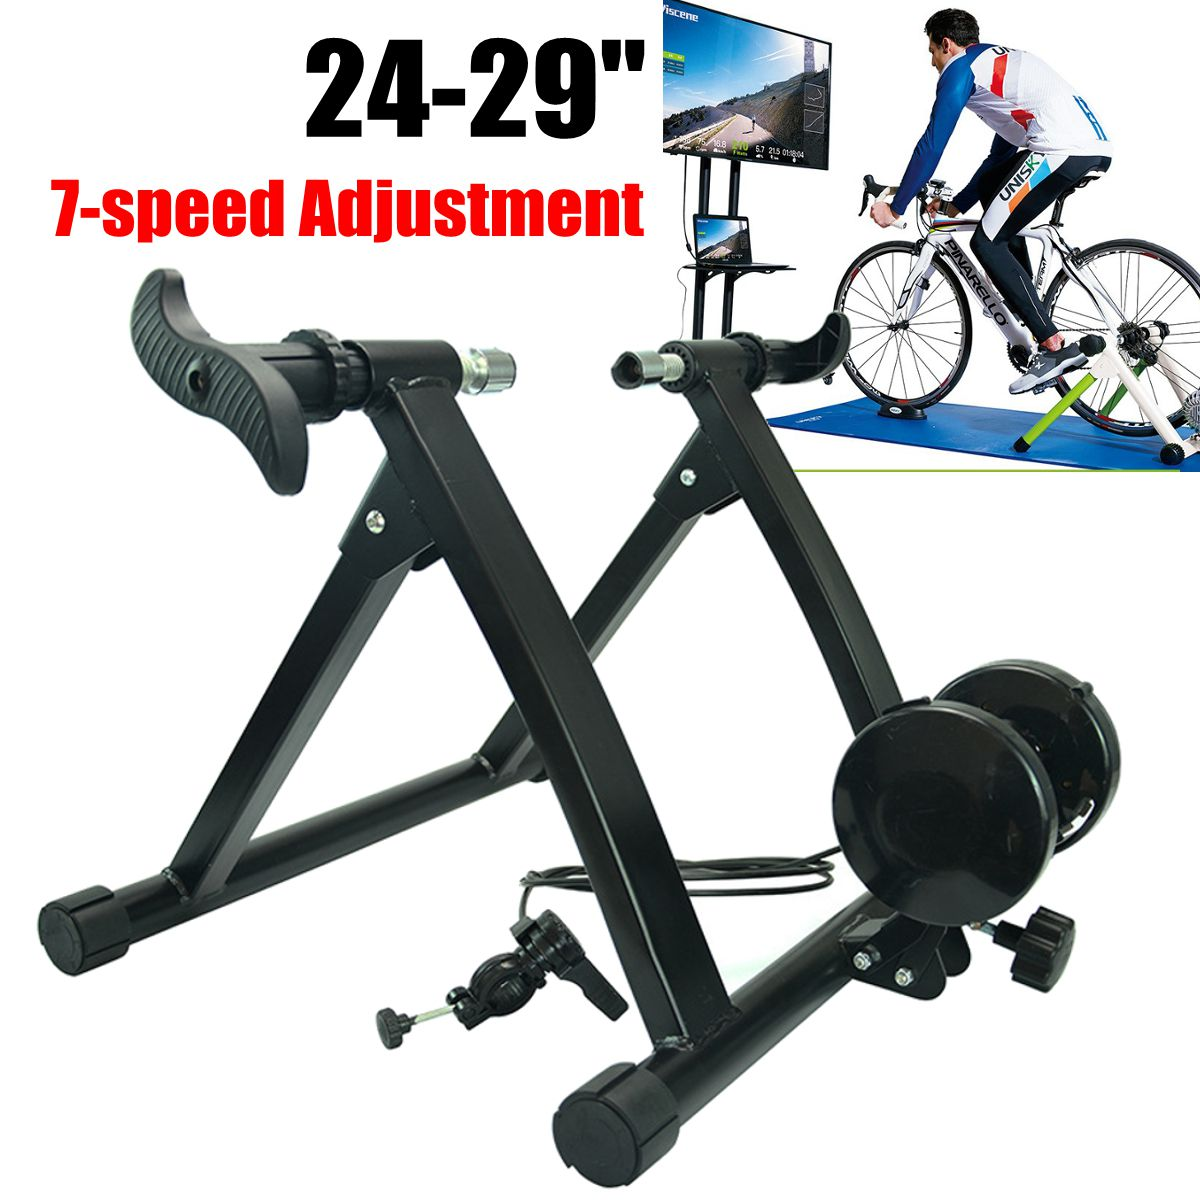 Bicycle Trainer Home Training Indoor Exercise 24-29